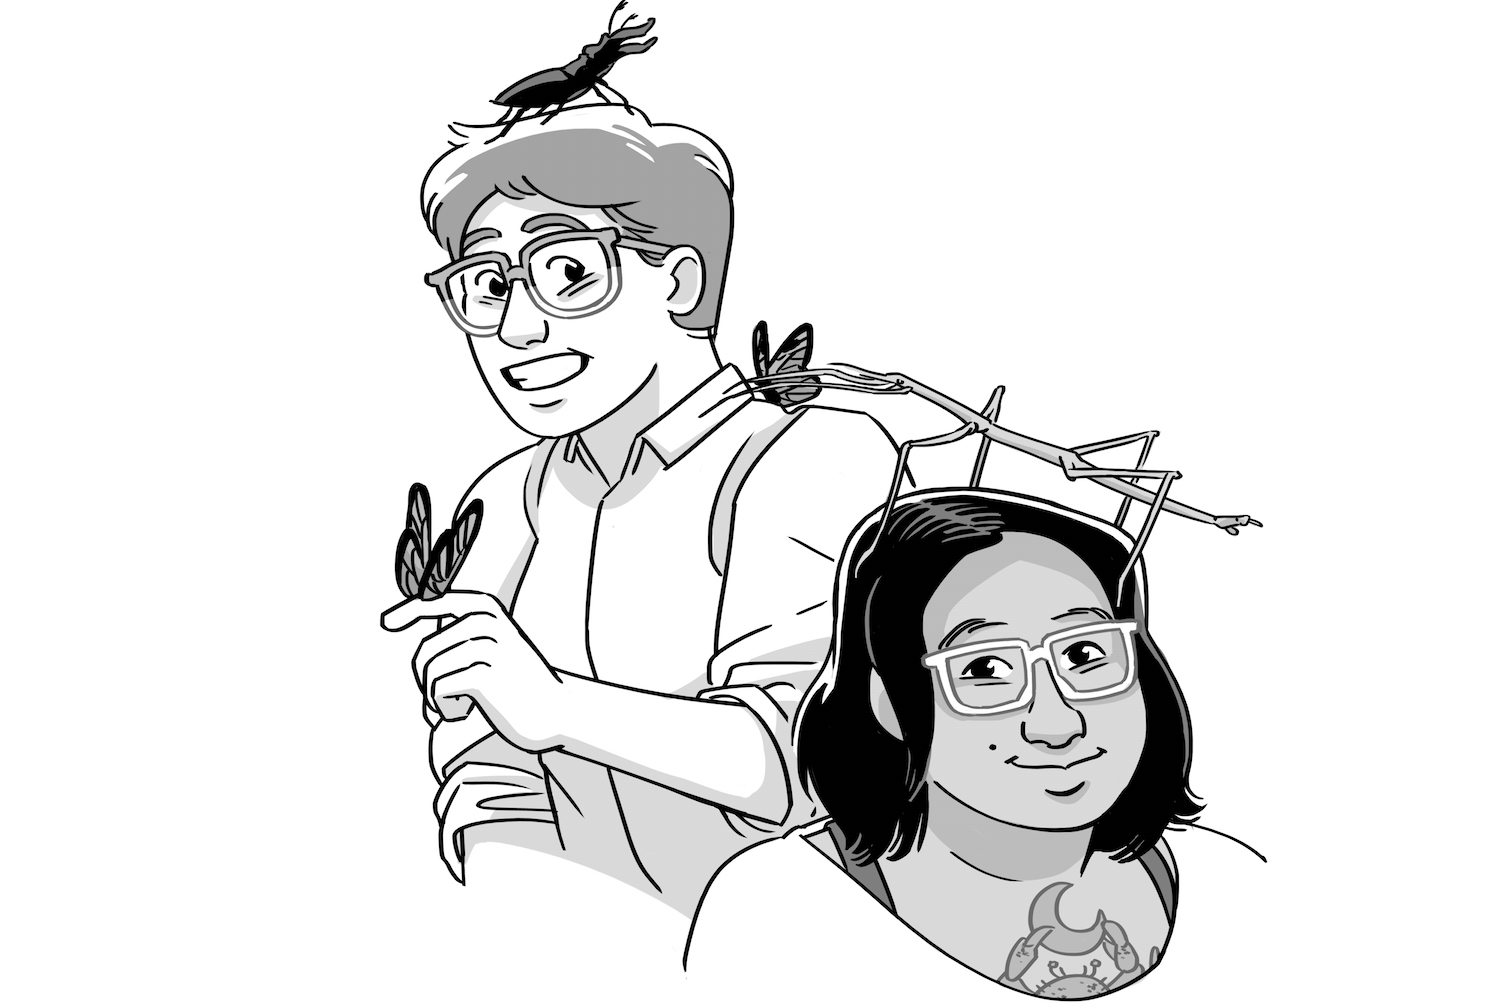 Blue Delliquanti and Soleil Ho, the authors of Meal, as depicted by comic artist, Blue Delliquanti (image courtesy of the artist)